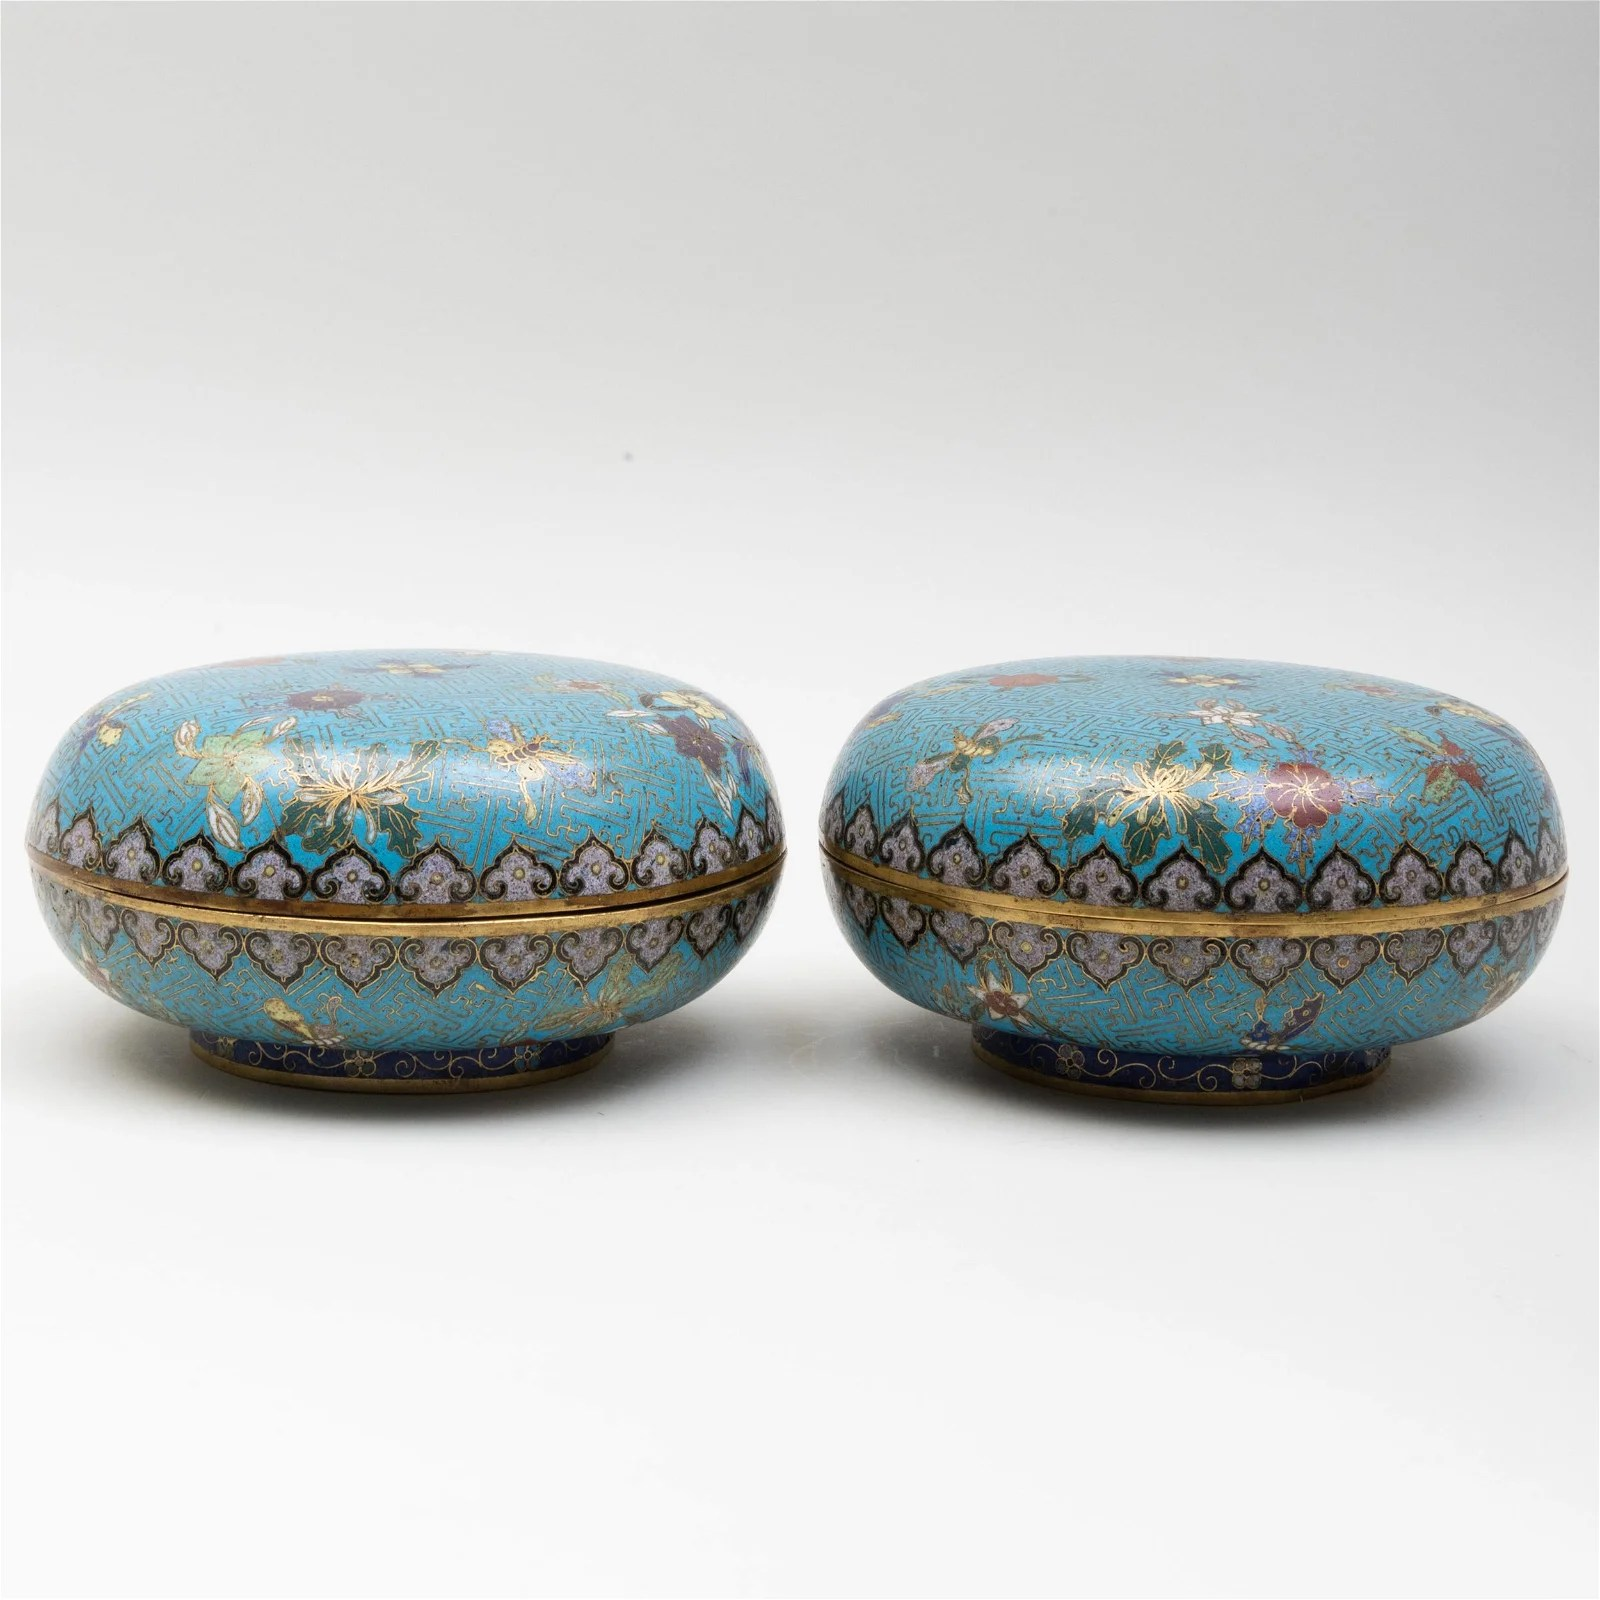 Pair of Chinese Cloisonne Circular Boxes and Covers